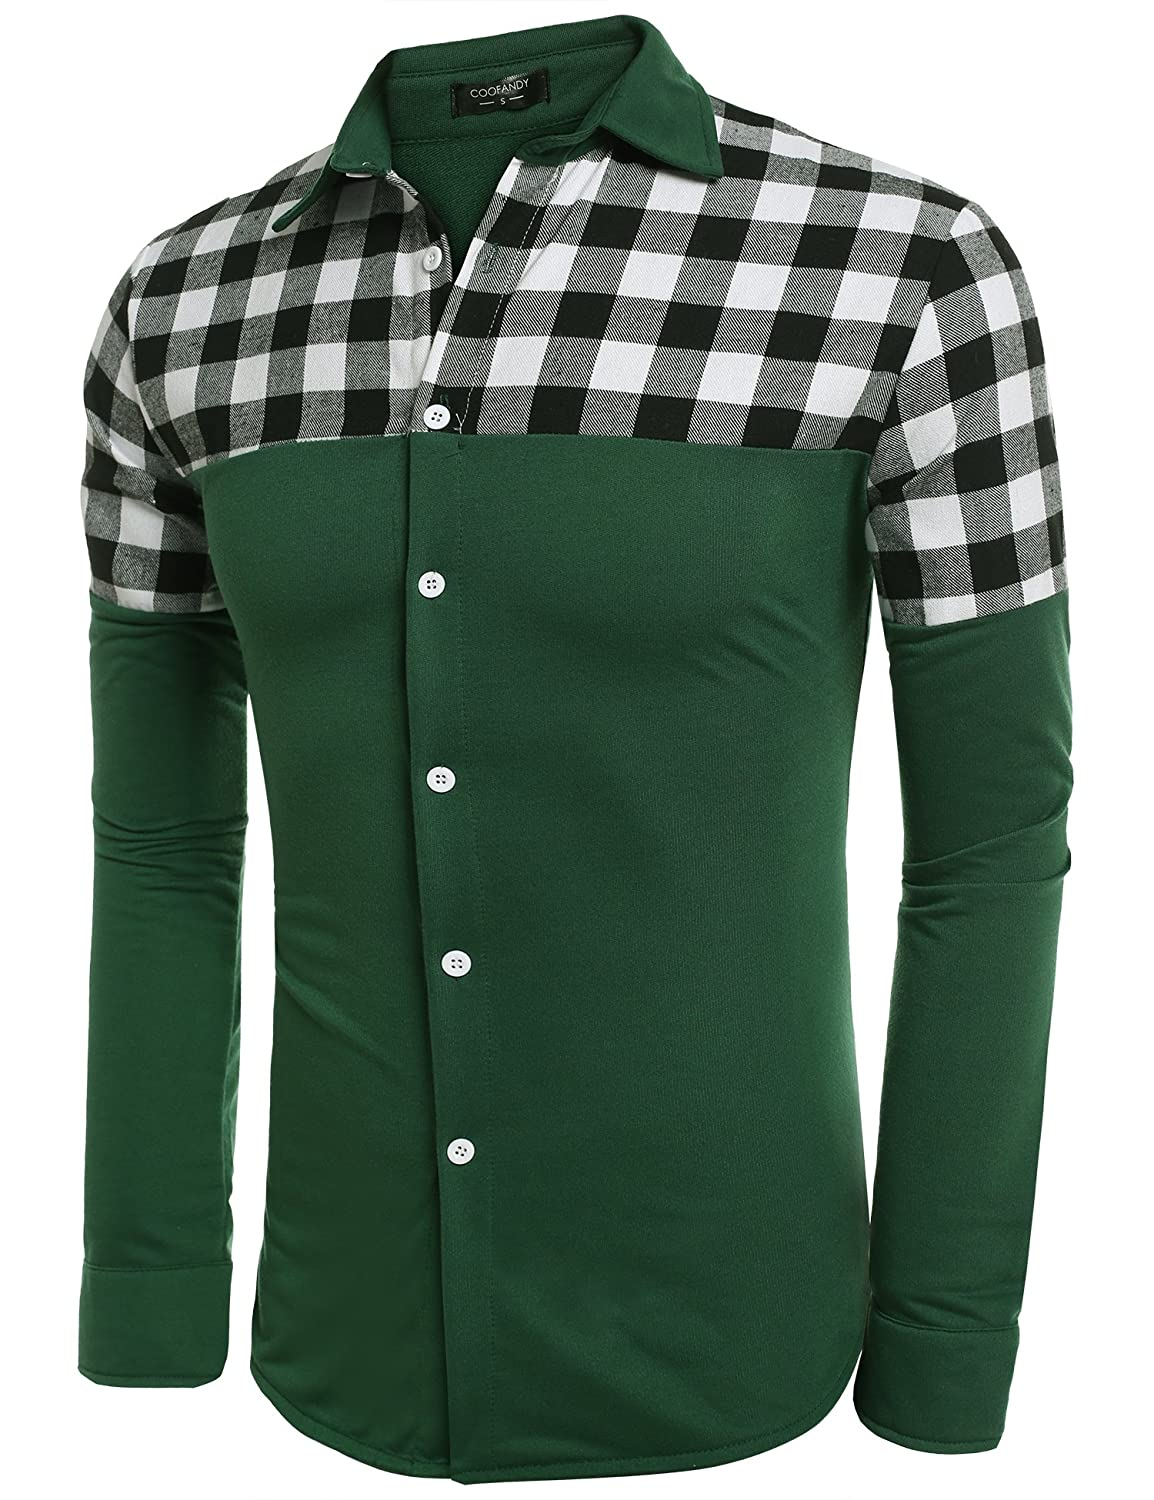 COOFANDY Men Plaid Cotton Casual Slim Fit Long Sleeve Button Down Dress Shirts